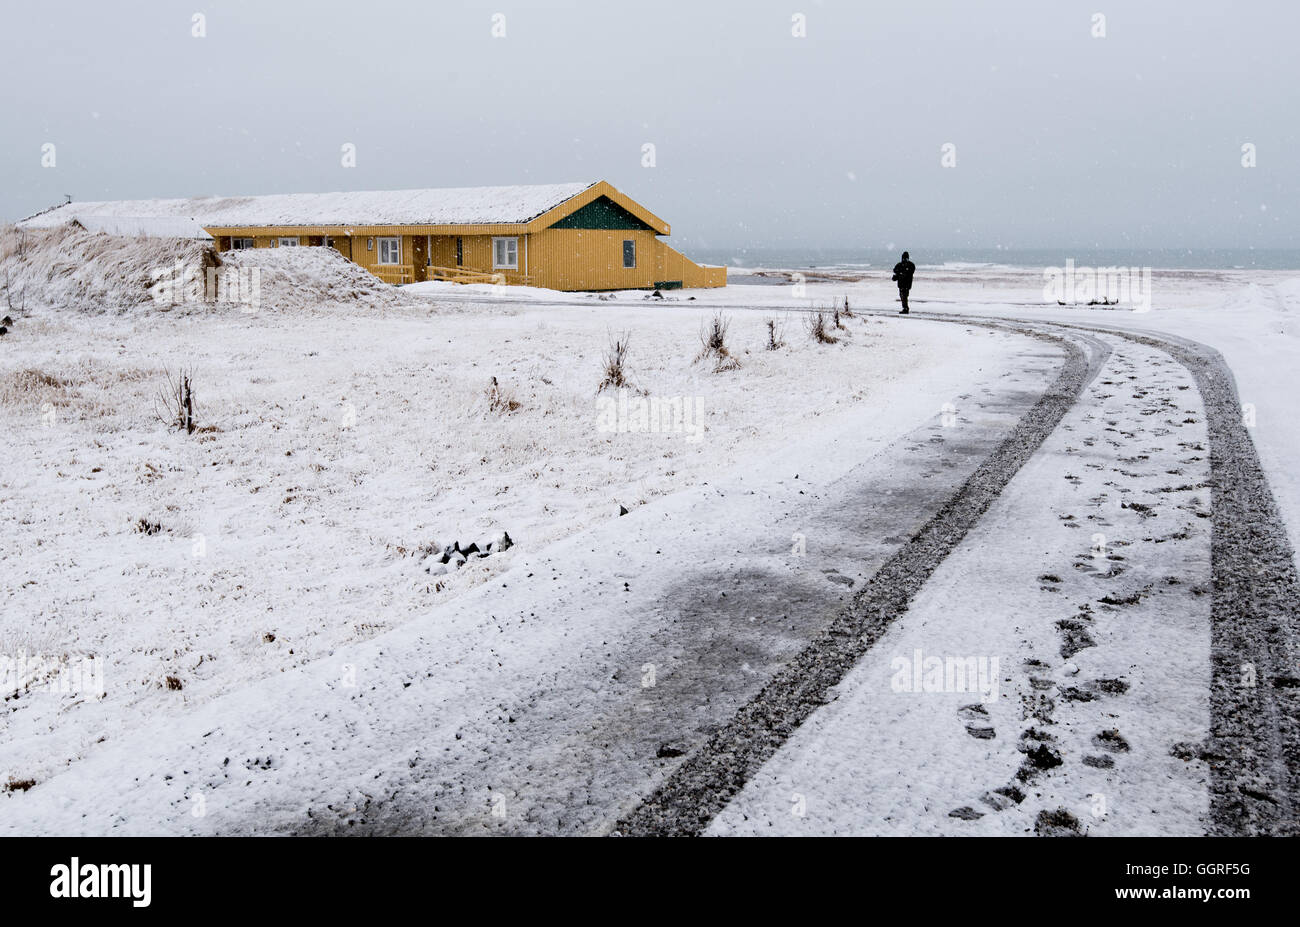 Unrecognized man walking on a snowy road to the yellow winter cottage house in Iceland Stock Photo